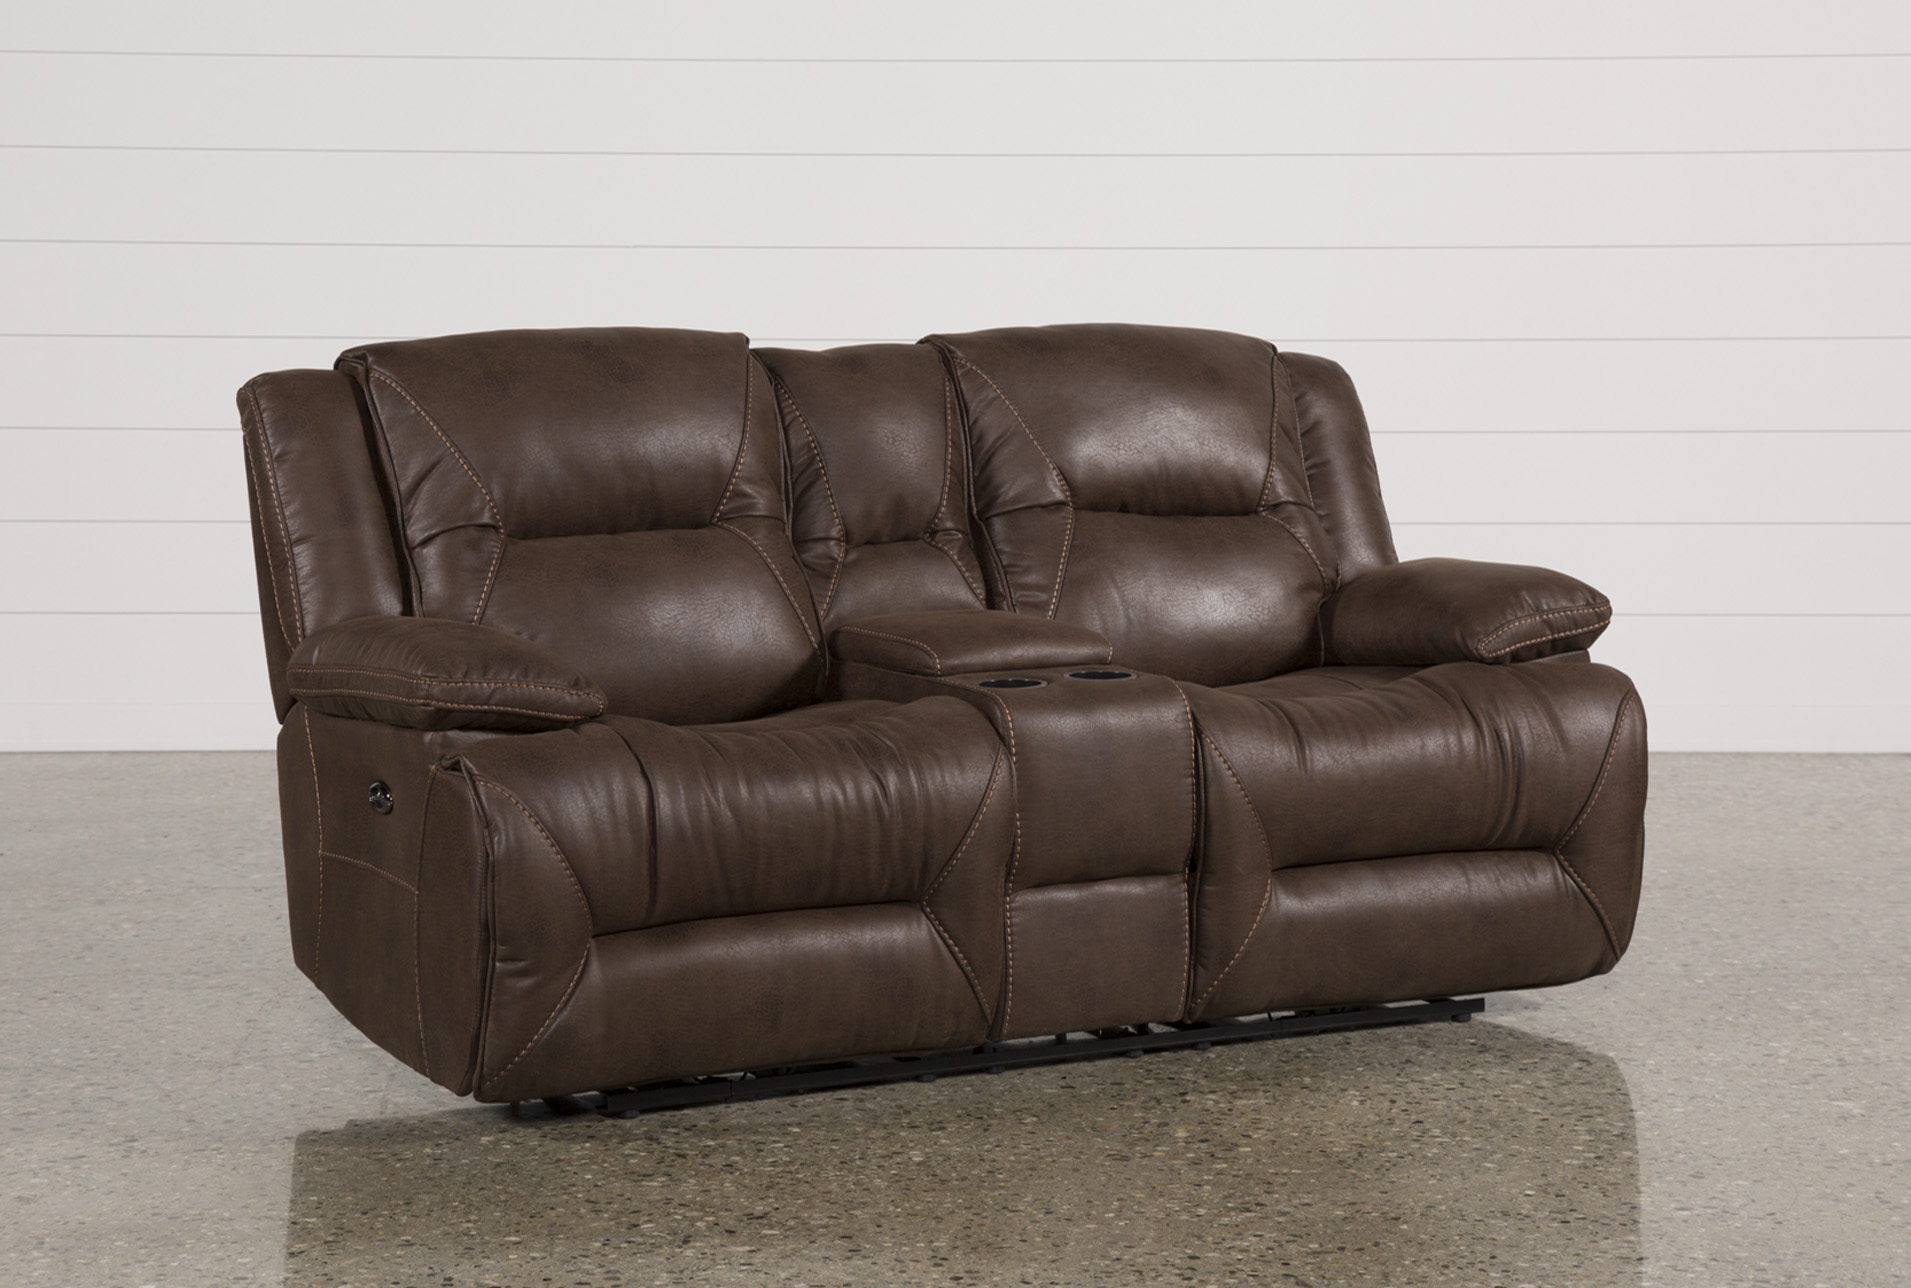 Calder Brown Power Reclining Loveseat W/Console | Living Spaces